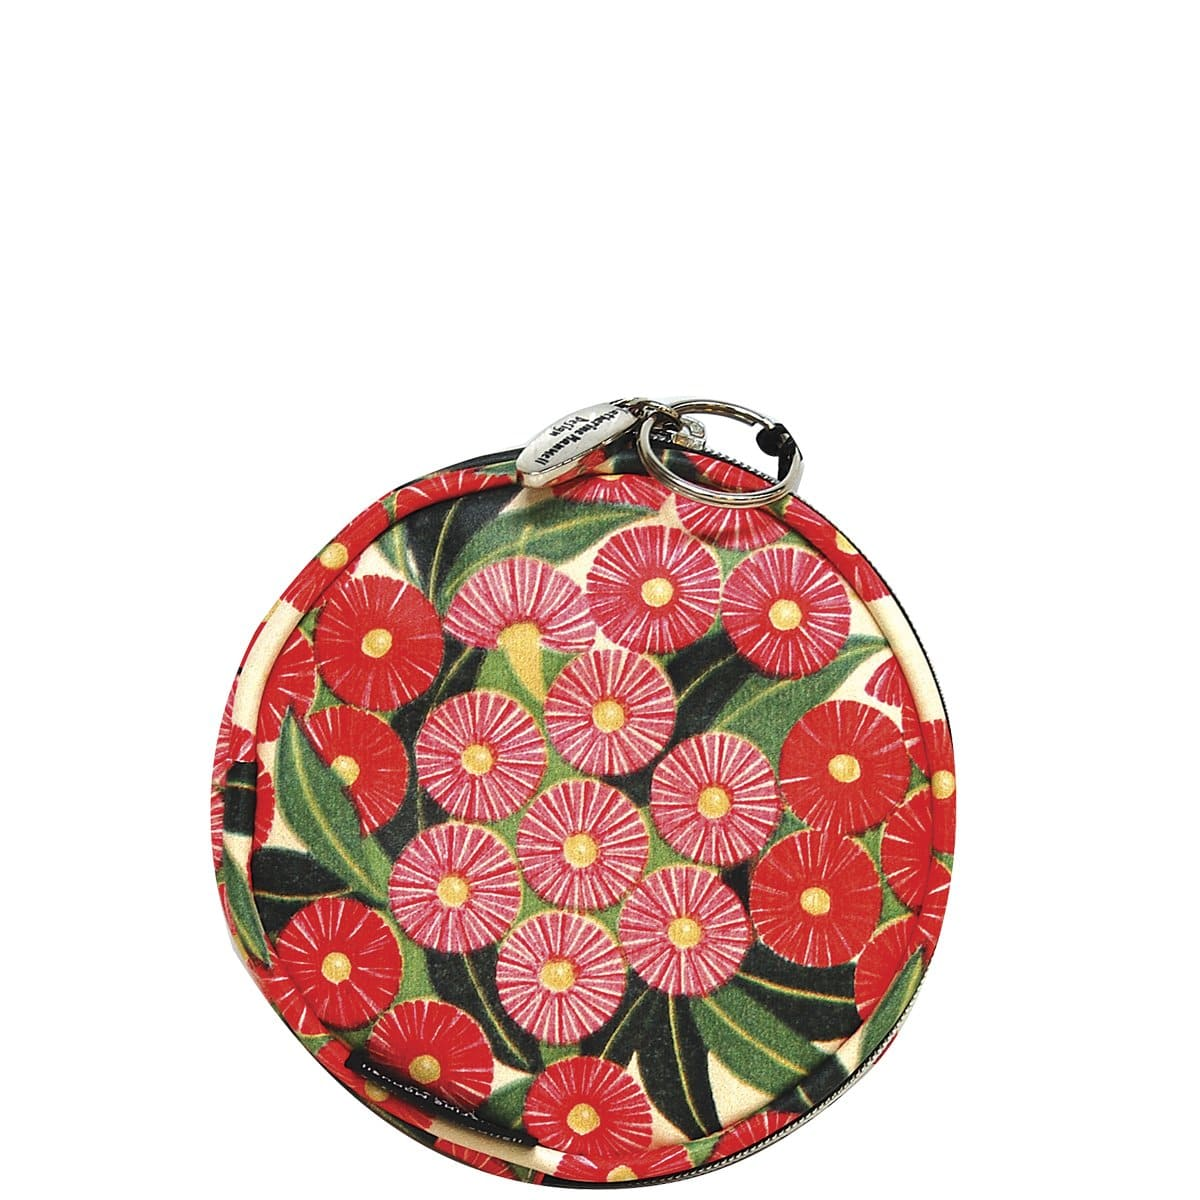 Floral Full Moon Coin Purse - Flowering Gums